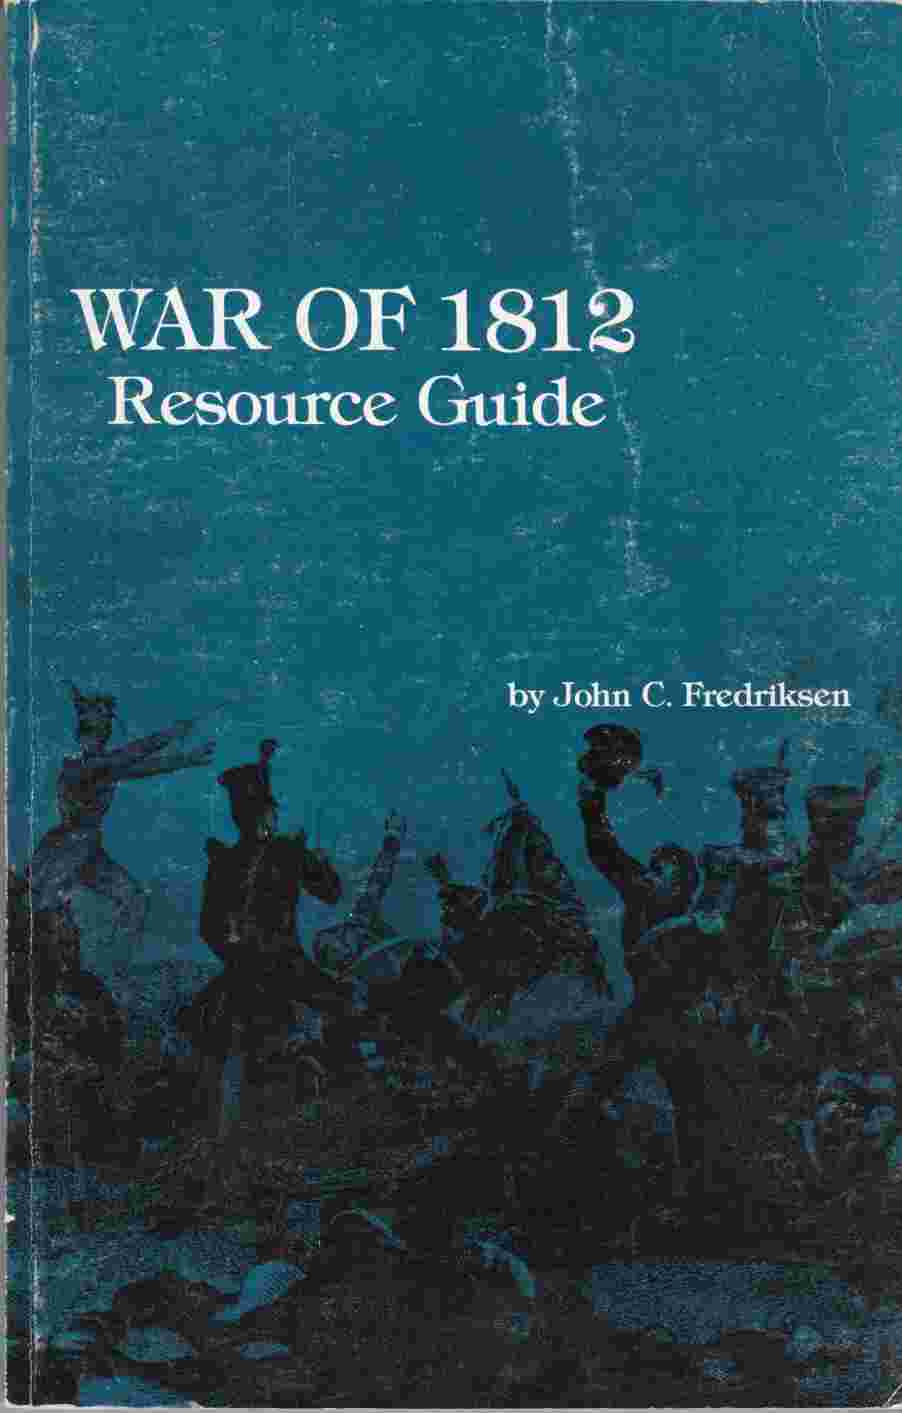 Image for War of 1812 Resource Guide